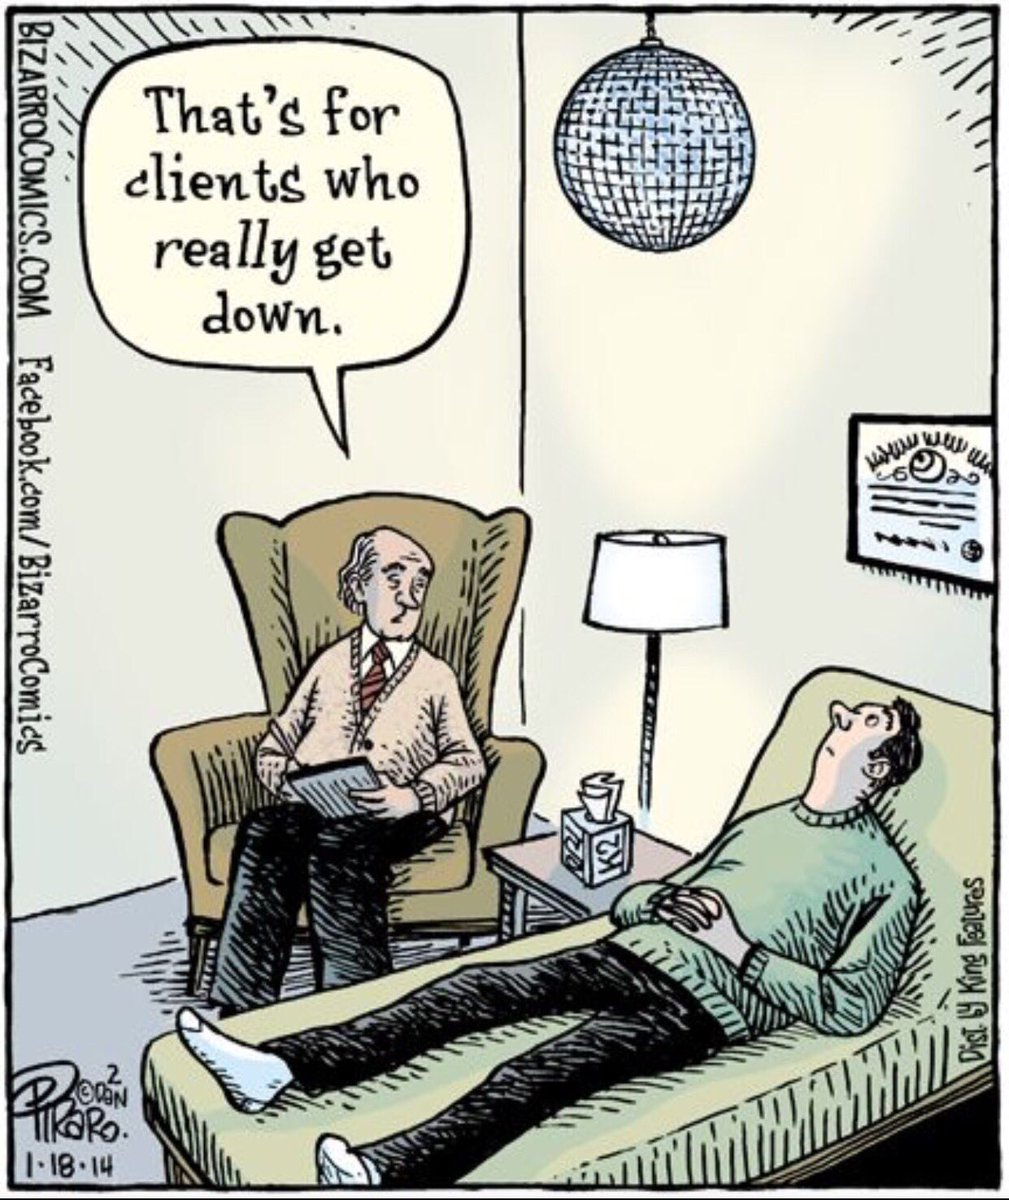 Just for the giggles   #funnies #cartoons #comics #giggles_4u #justforlaughs #counselling #therapy #jokes #PartyAnimal #HappySunday<br>http://pic.twitter.com/TOQTSN49U8